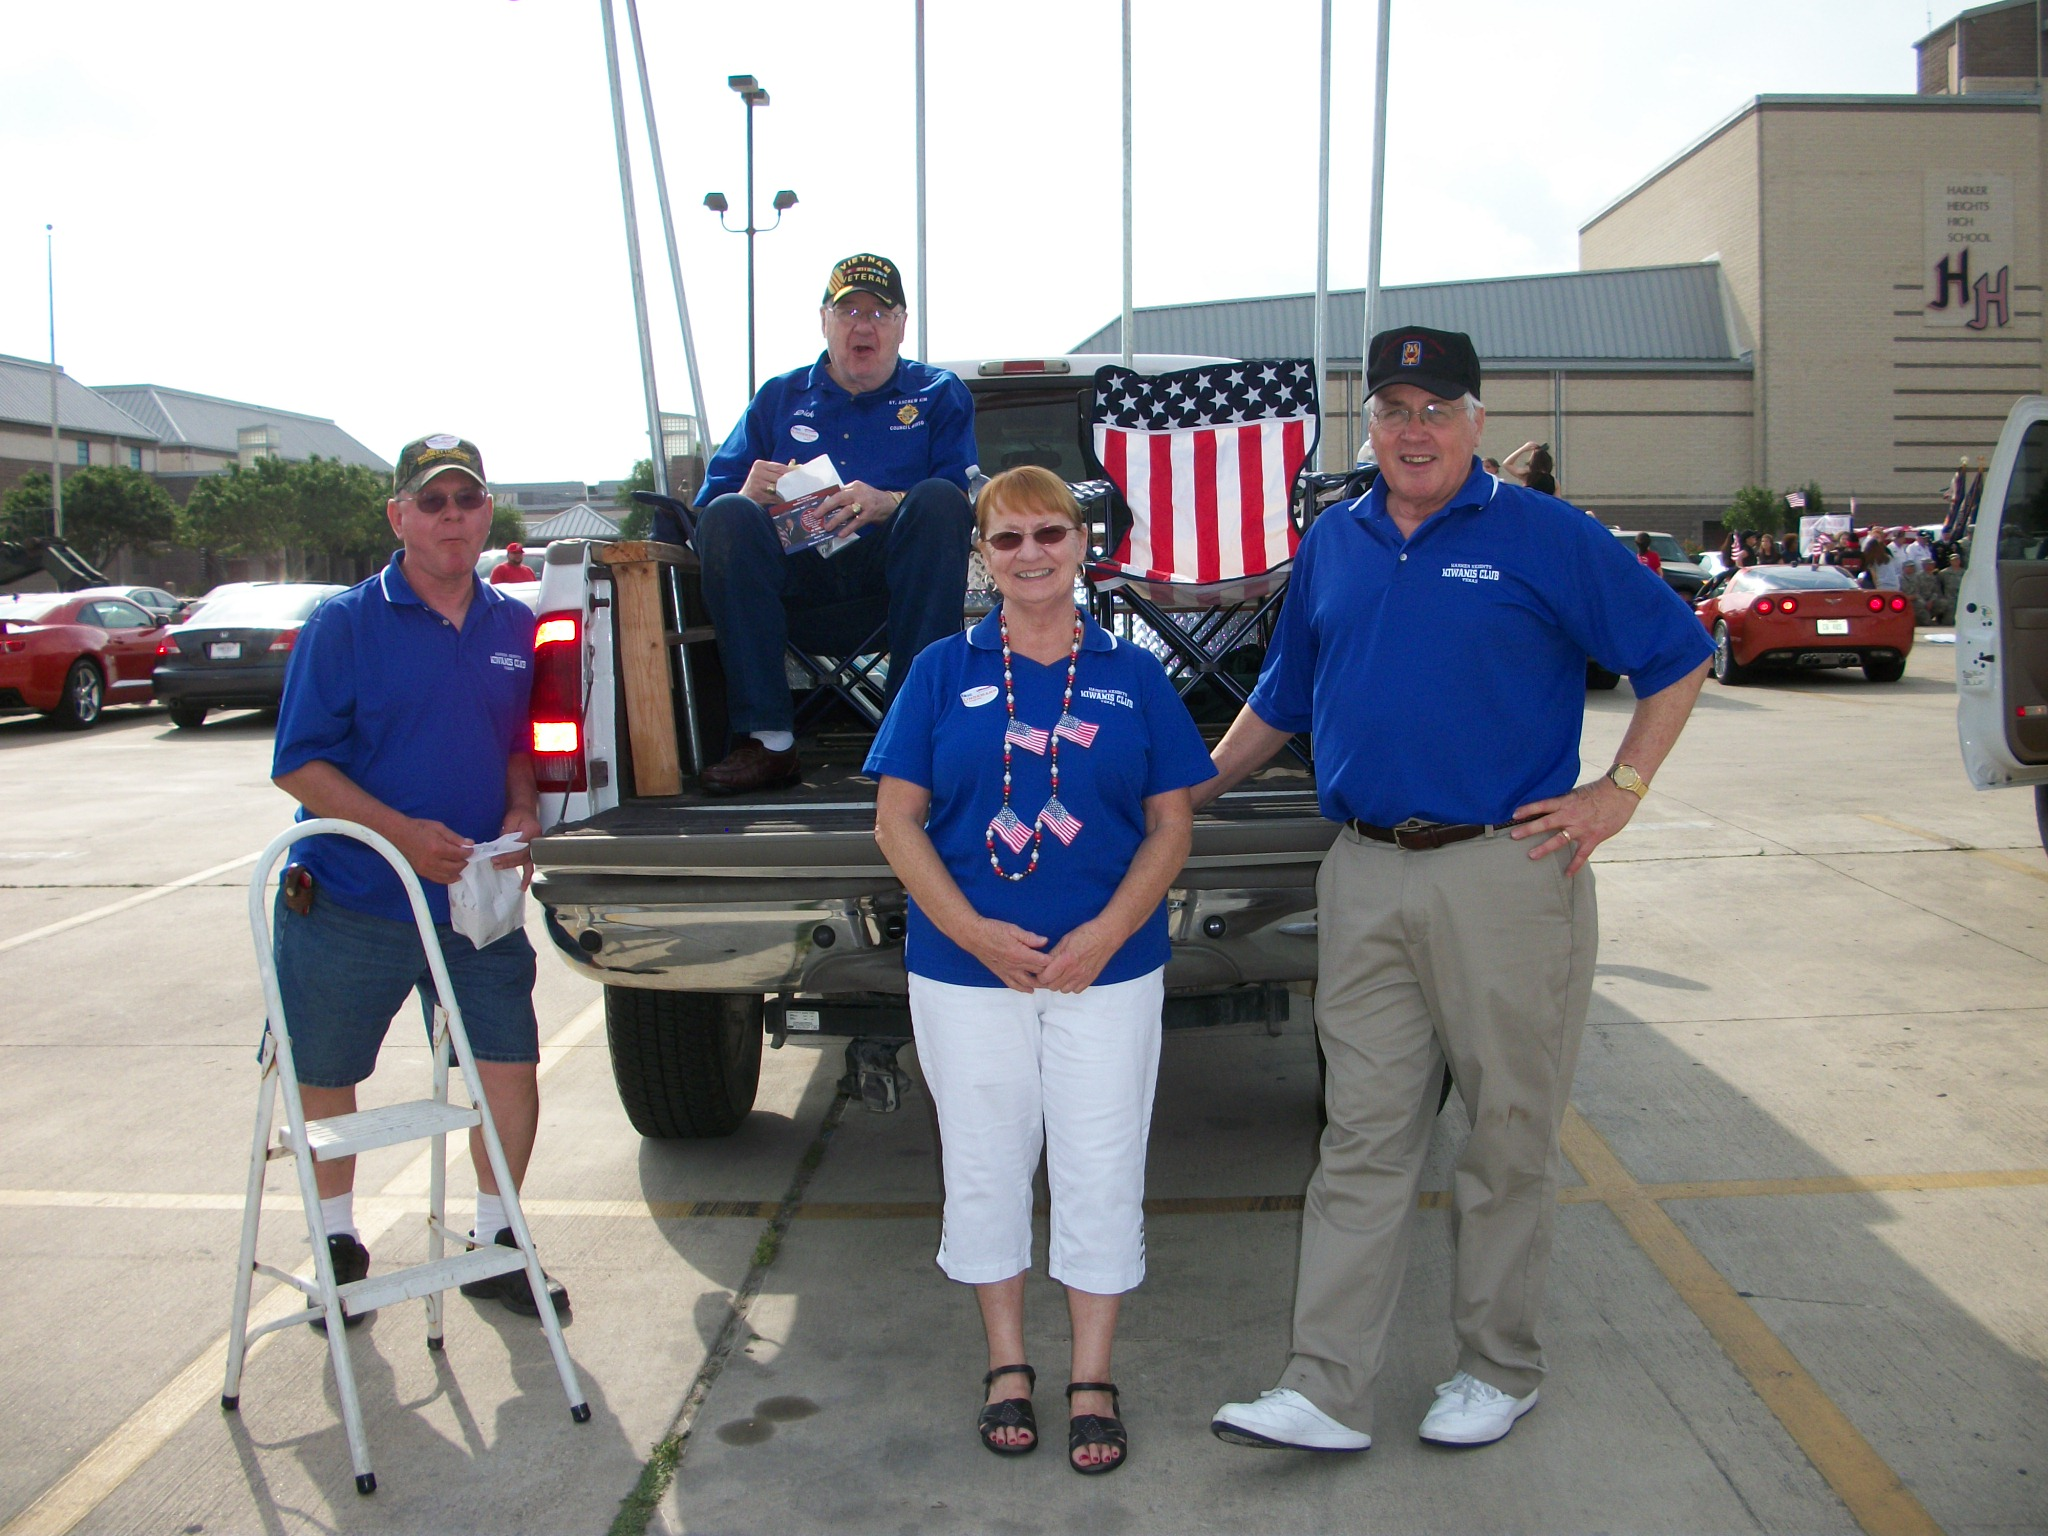 Kiwanis Team for the Parade 2012